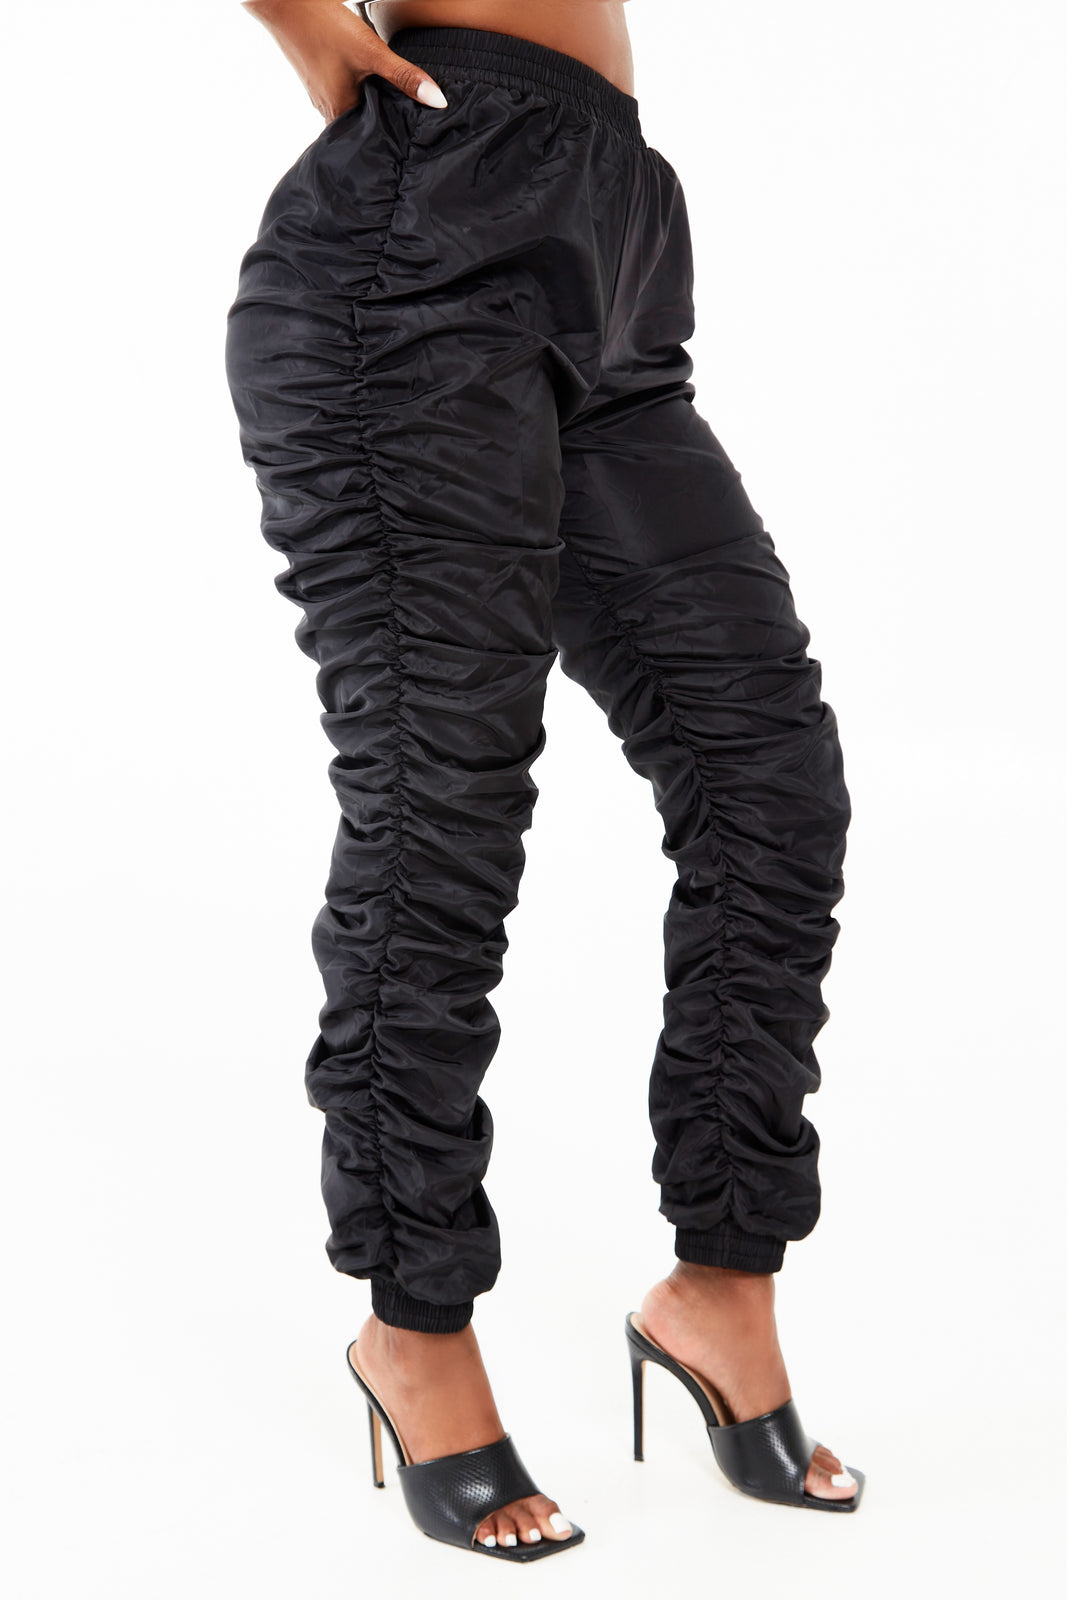 Black Ruched Jogger Pants